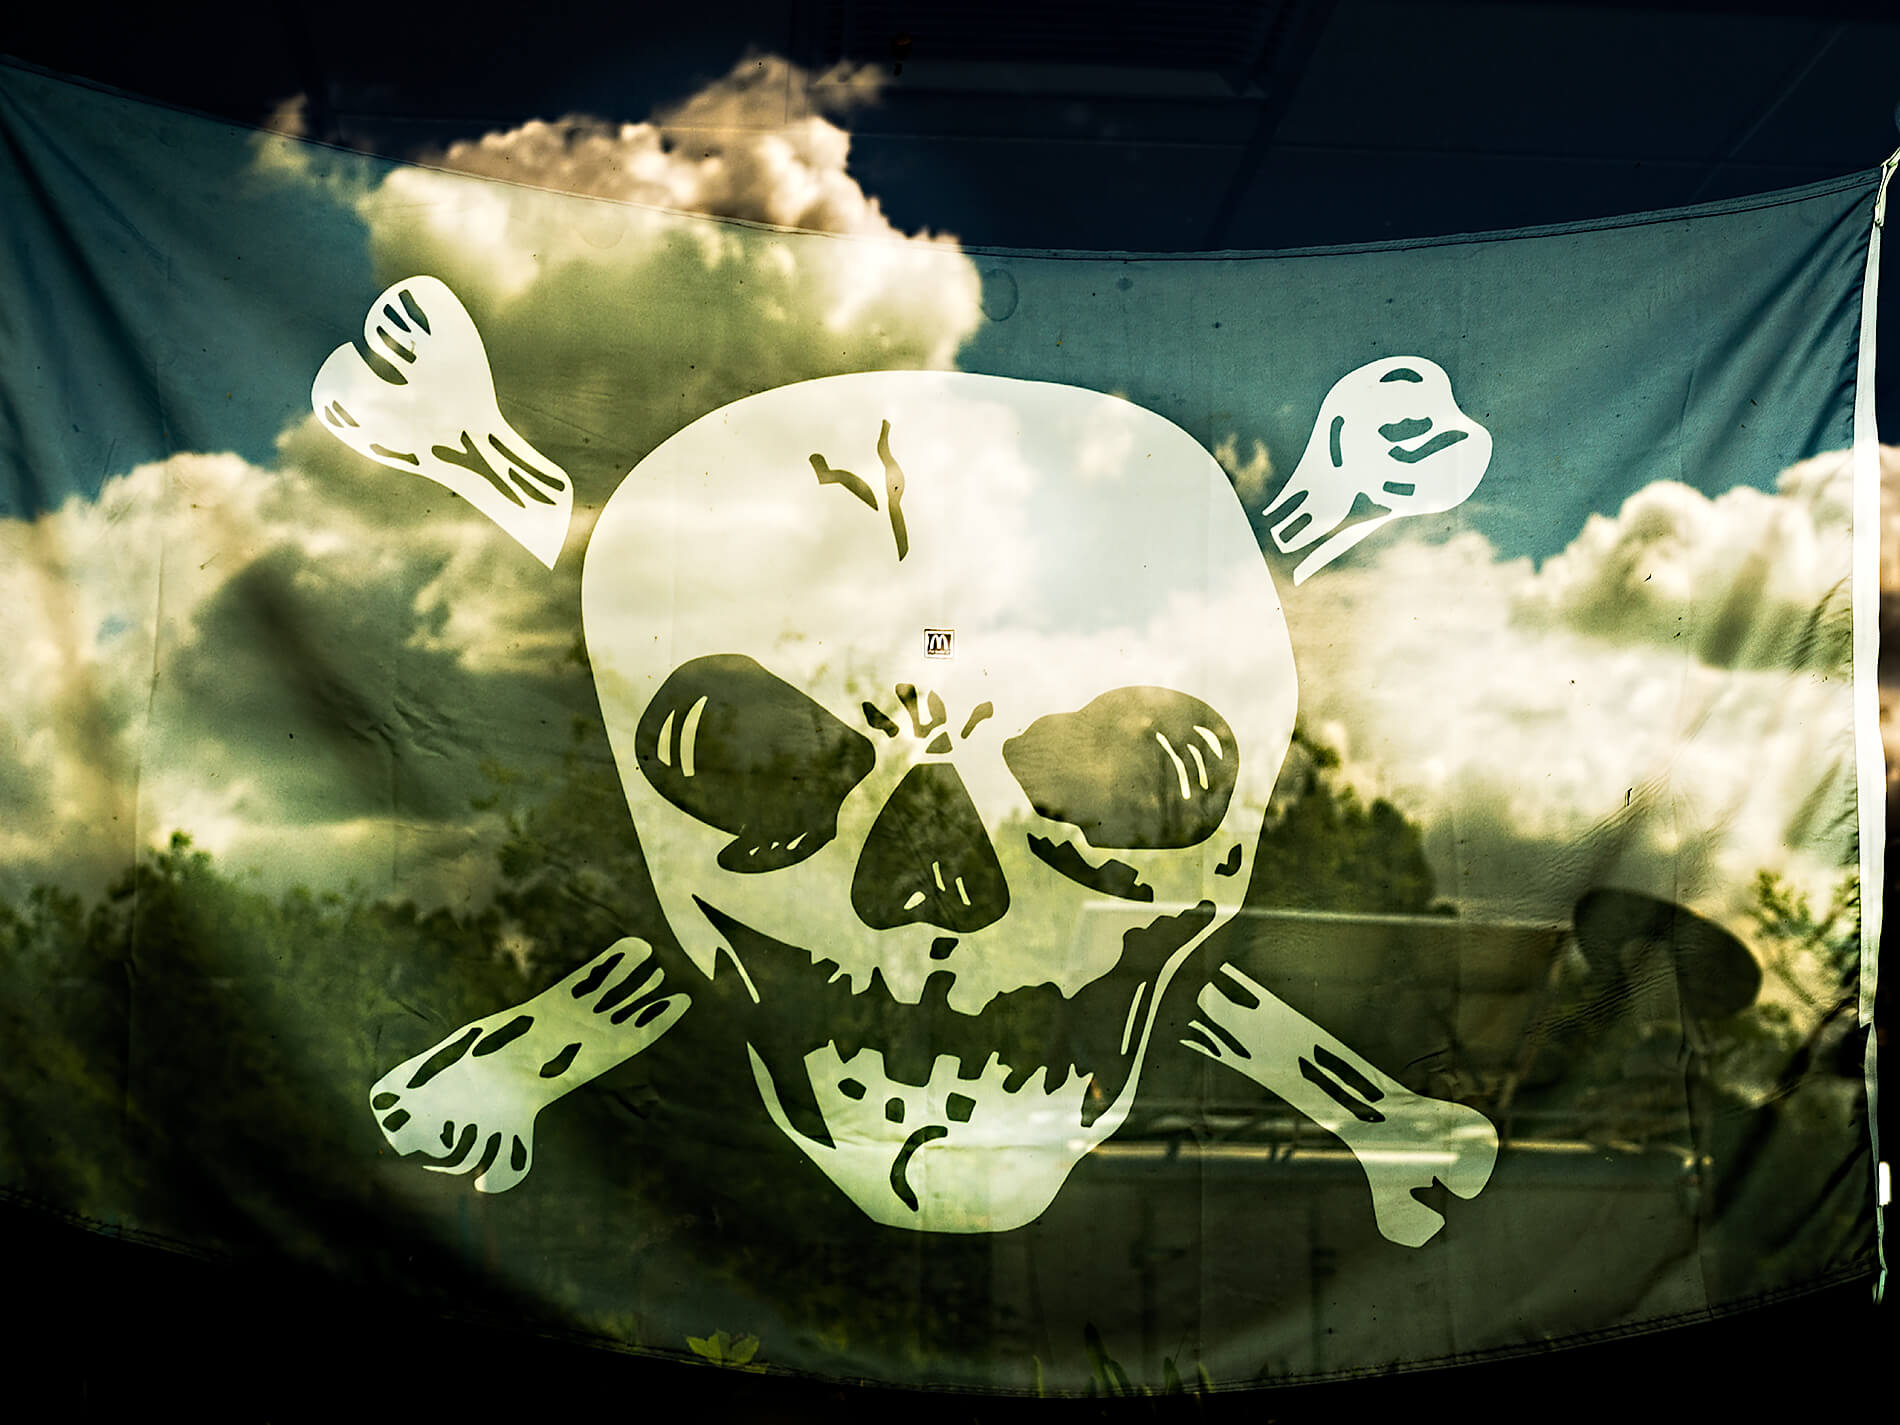 Pirate flag with clouds reflecting